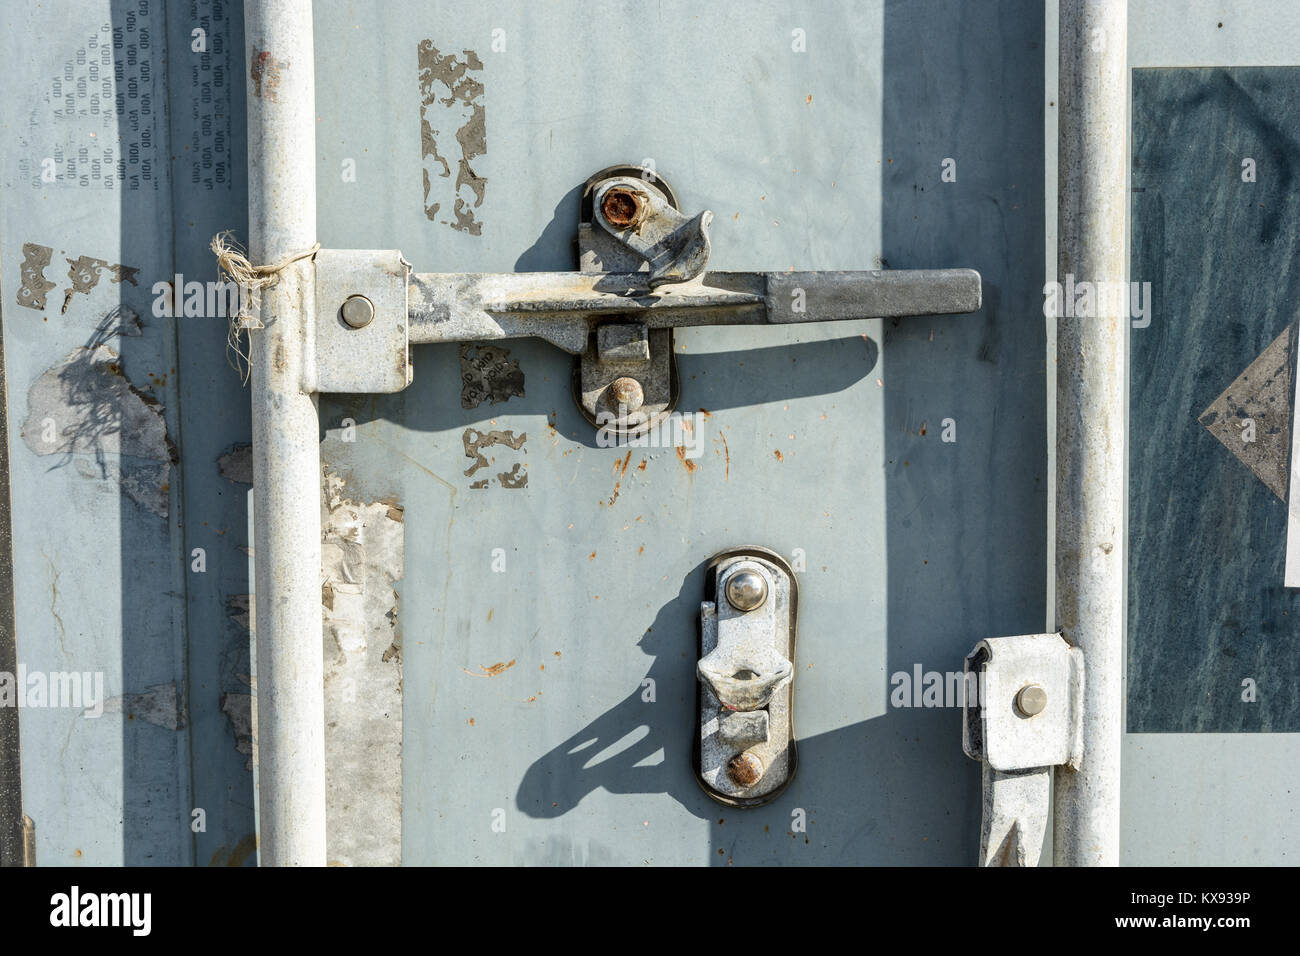 Closeup view of the worn door handle lock of an intermodal shipping